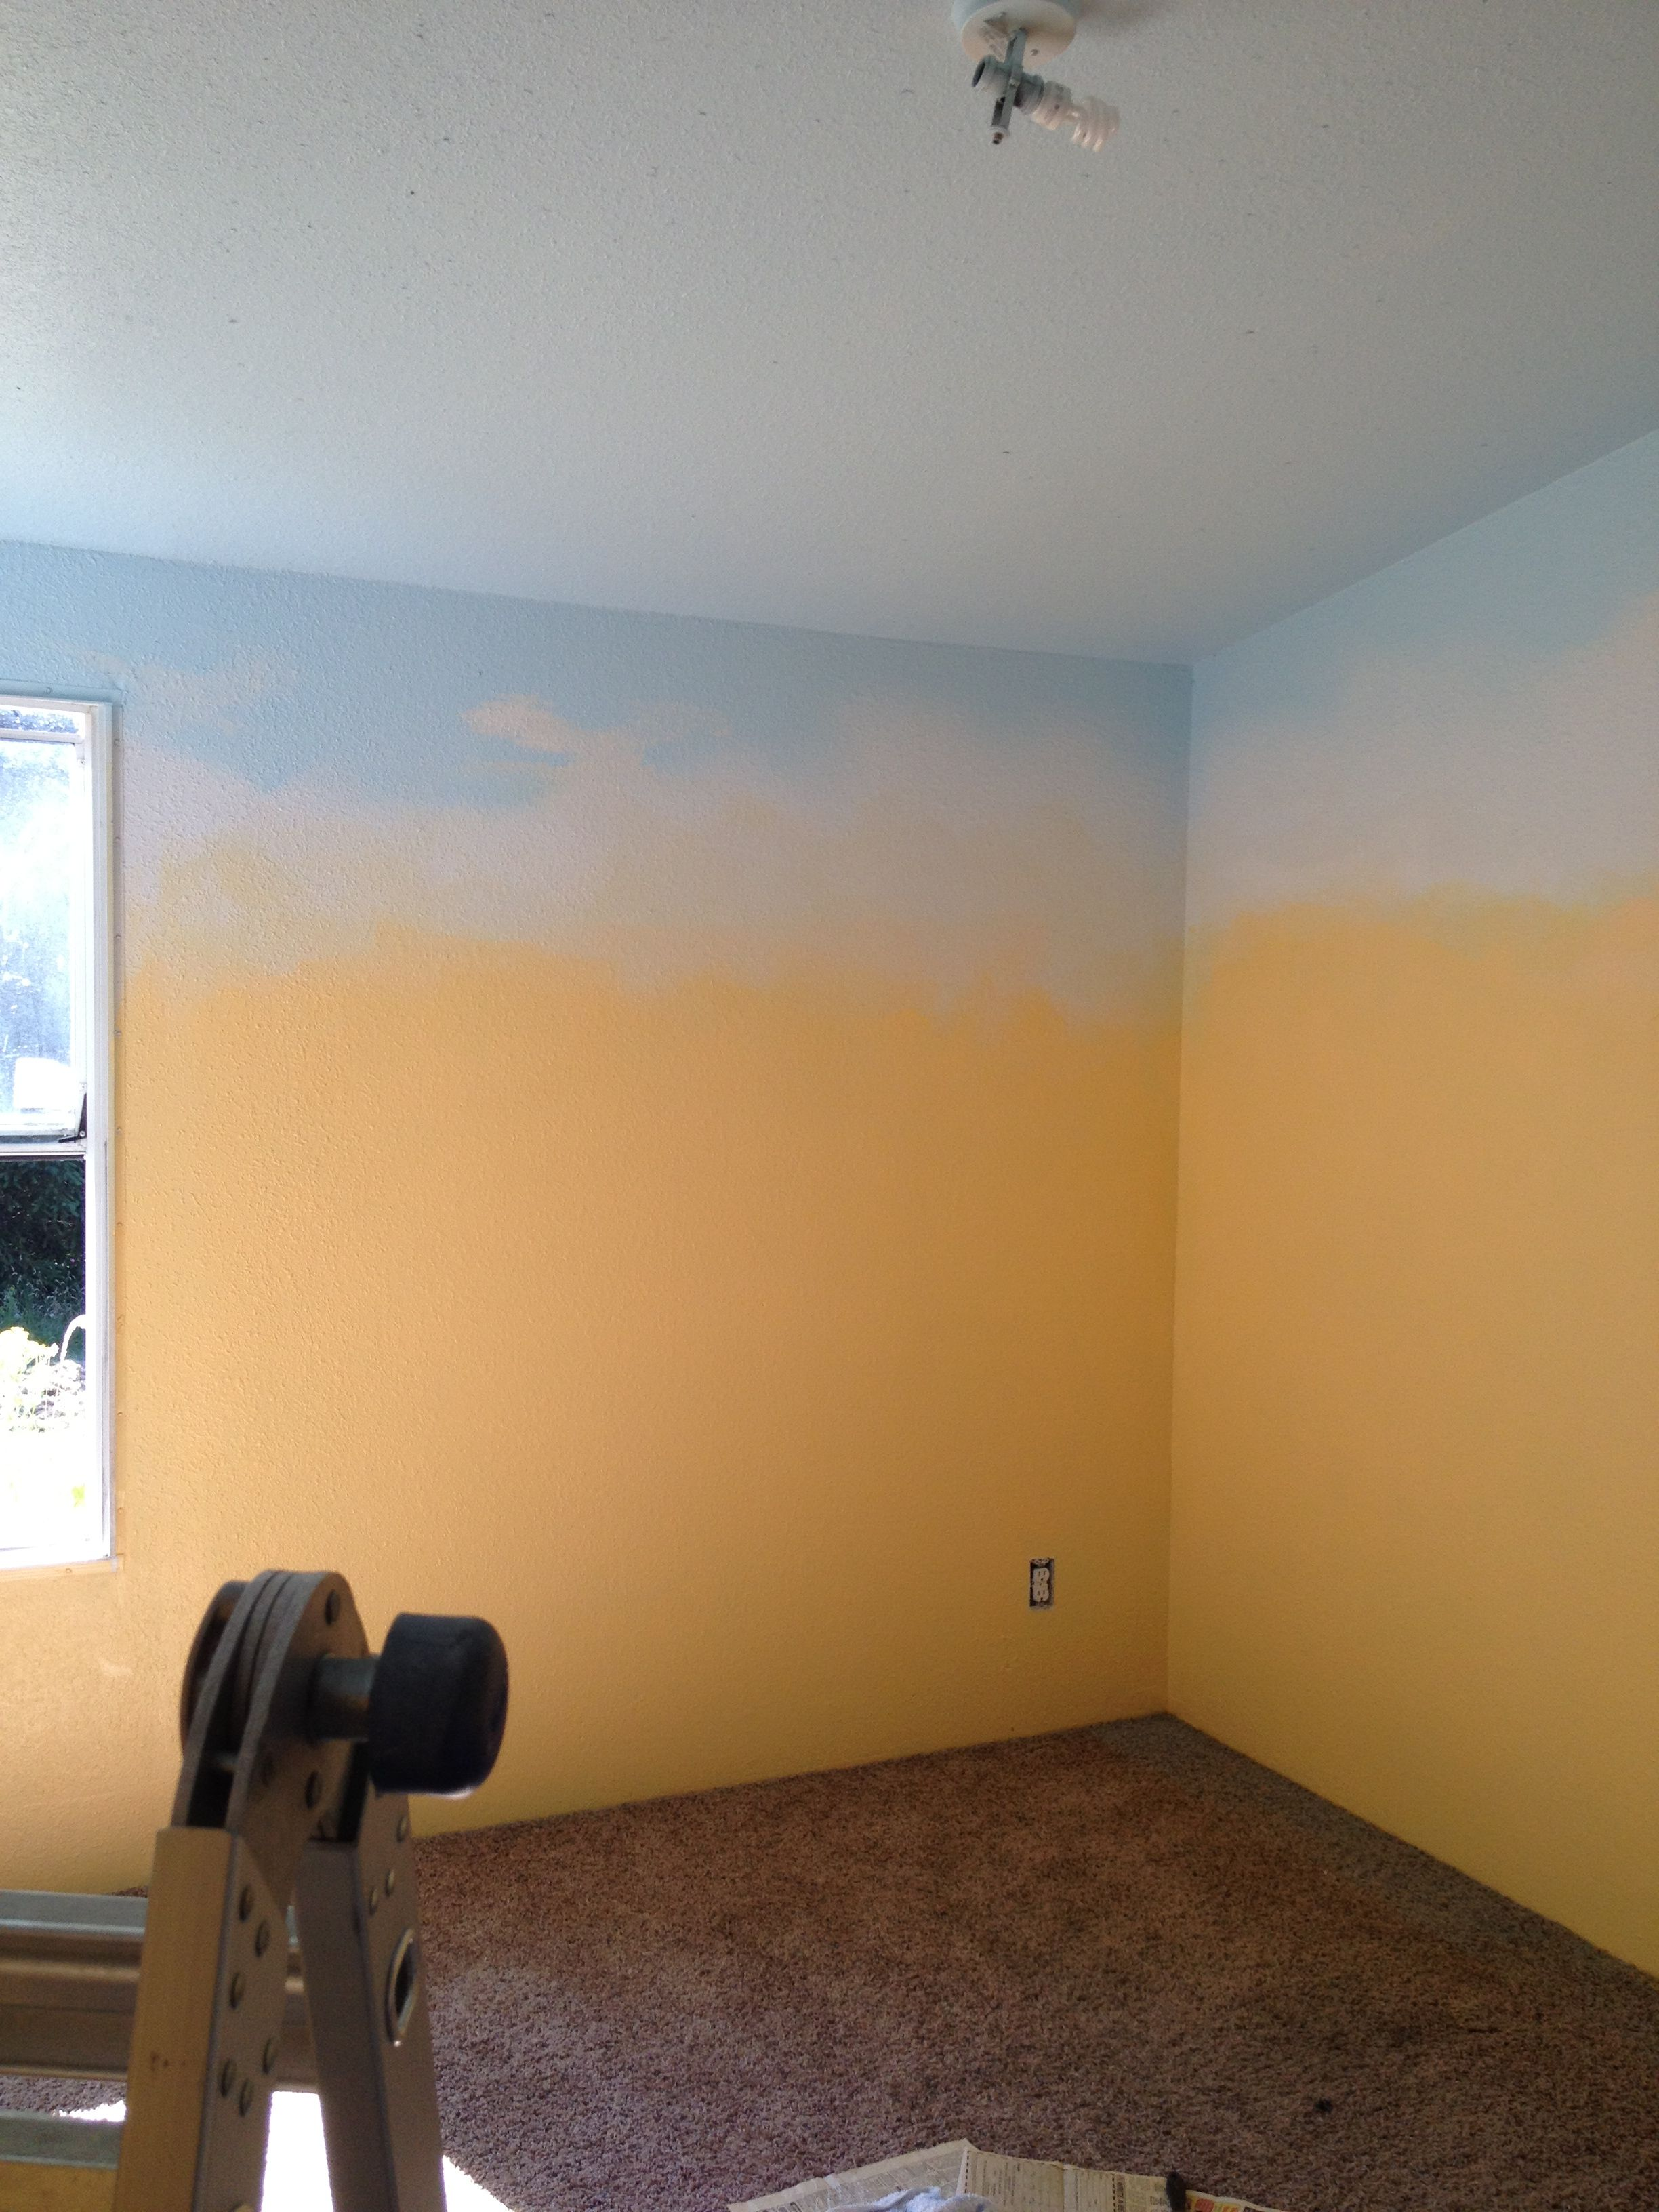 Paint Walls Yellow Paint Ceiling And Top Of Wall Blue Sponge White In The Middle Blend L Sponge Painting Walls Yellow Painted Rooms Black Painted Furniture